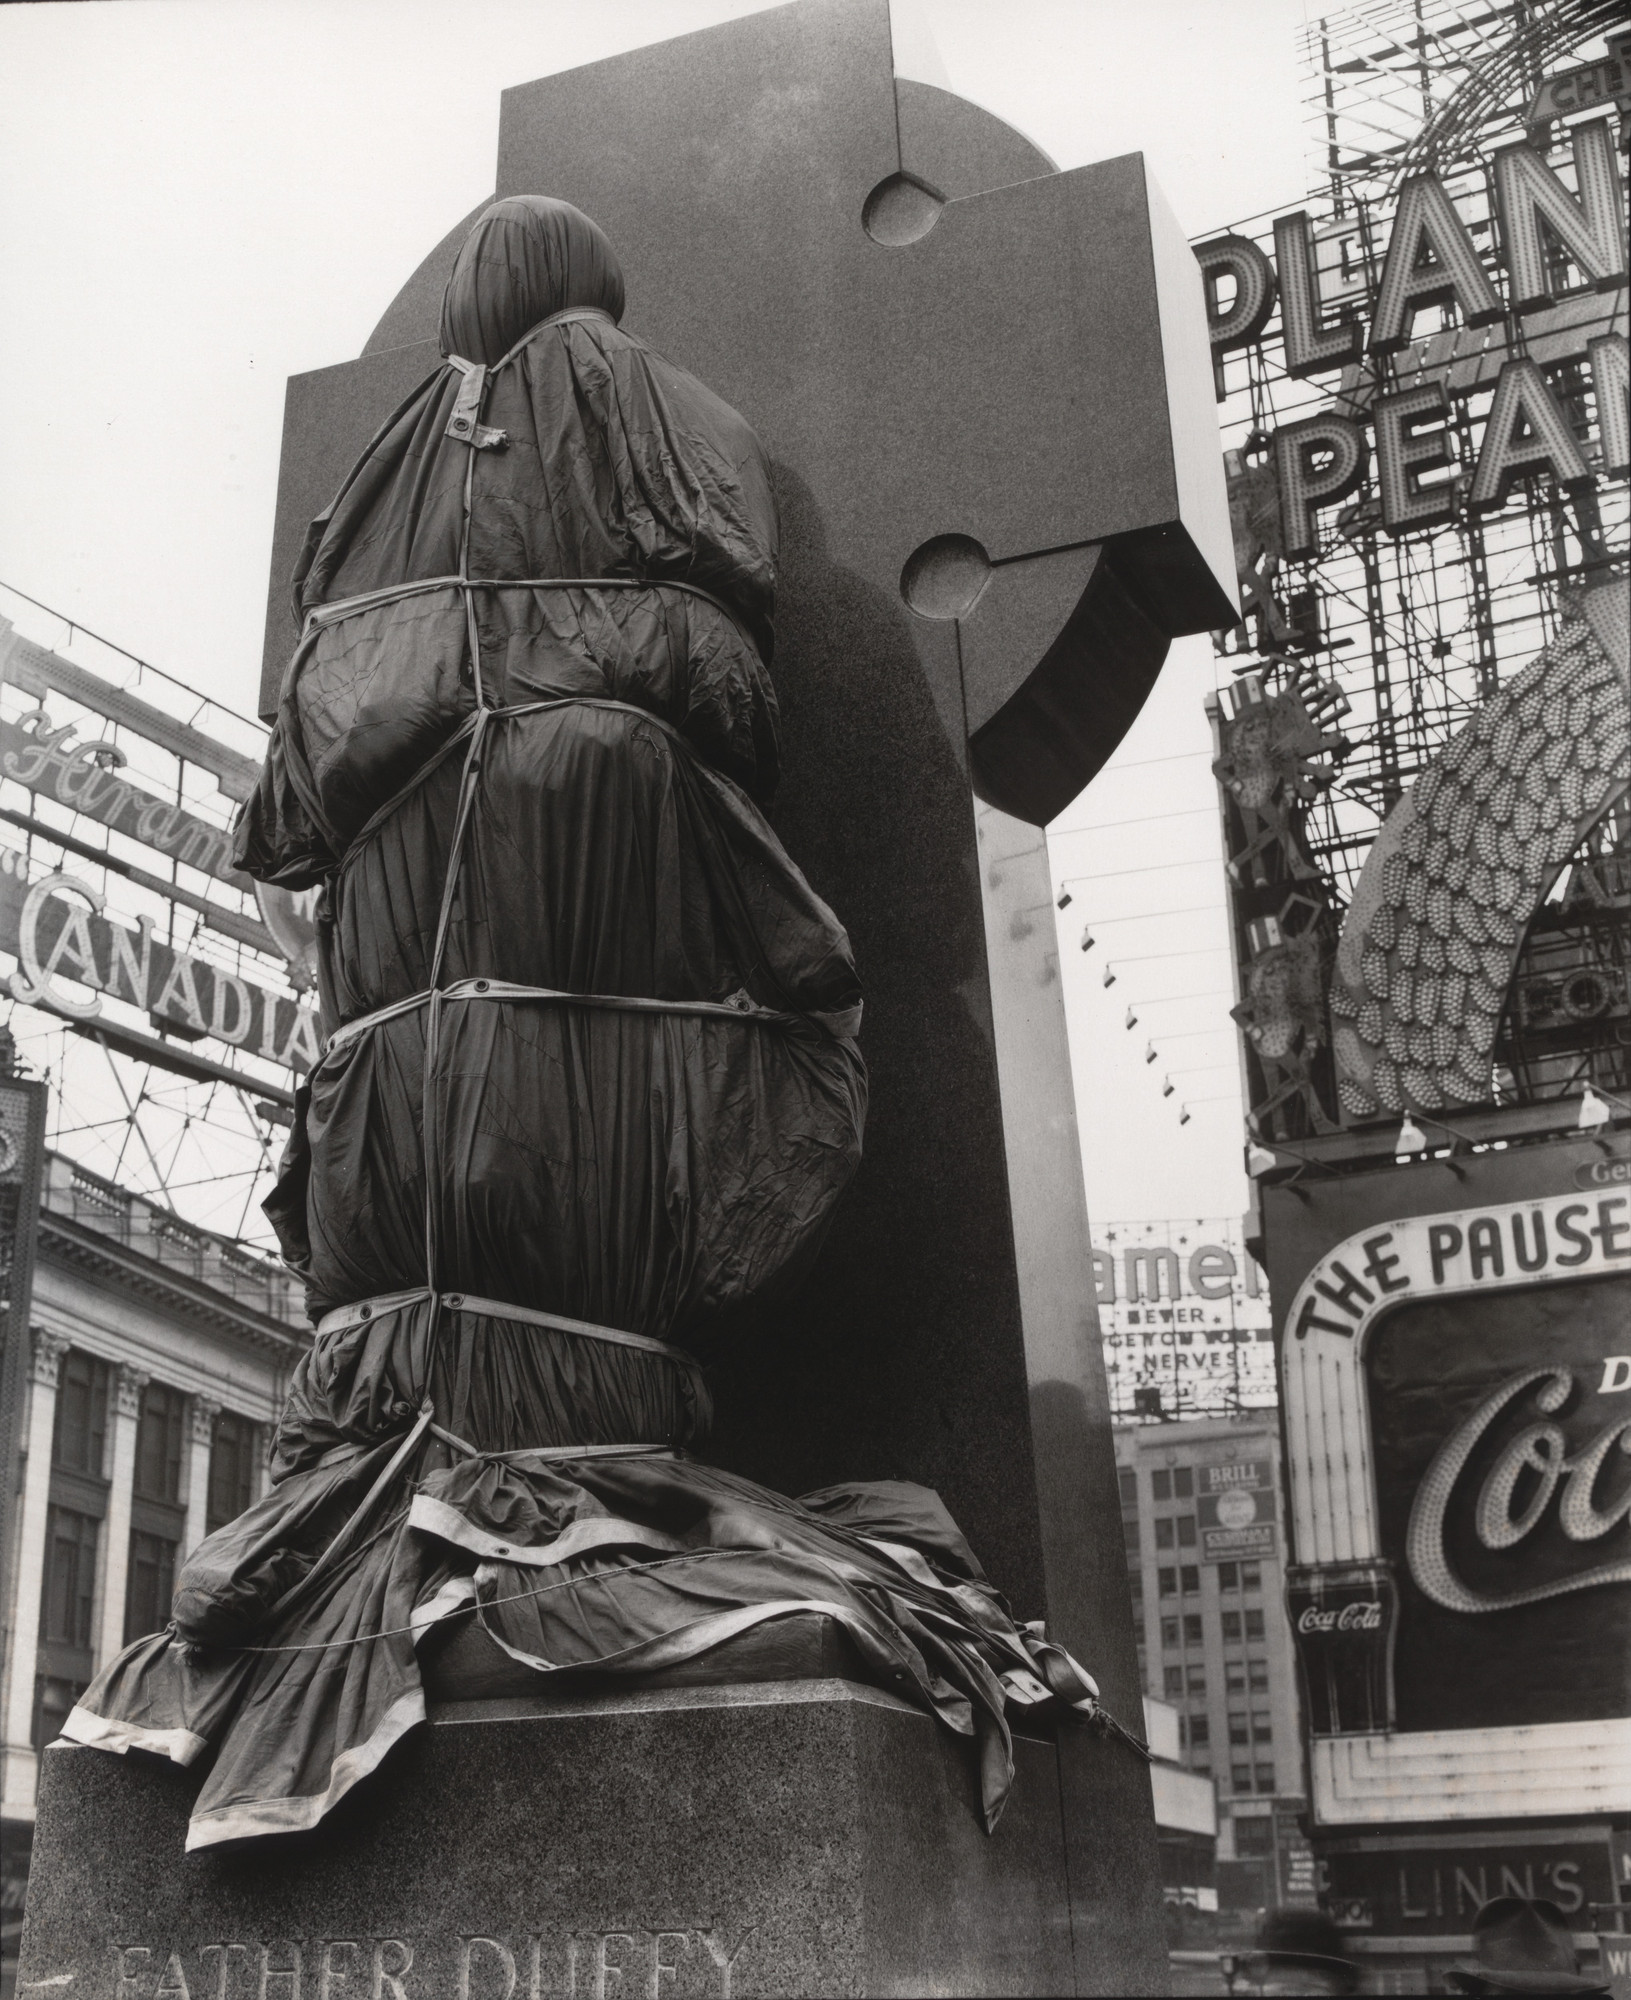 Berenice Abbott. Father Duffy, Times Square. April 14, 1937